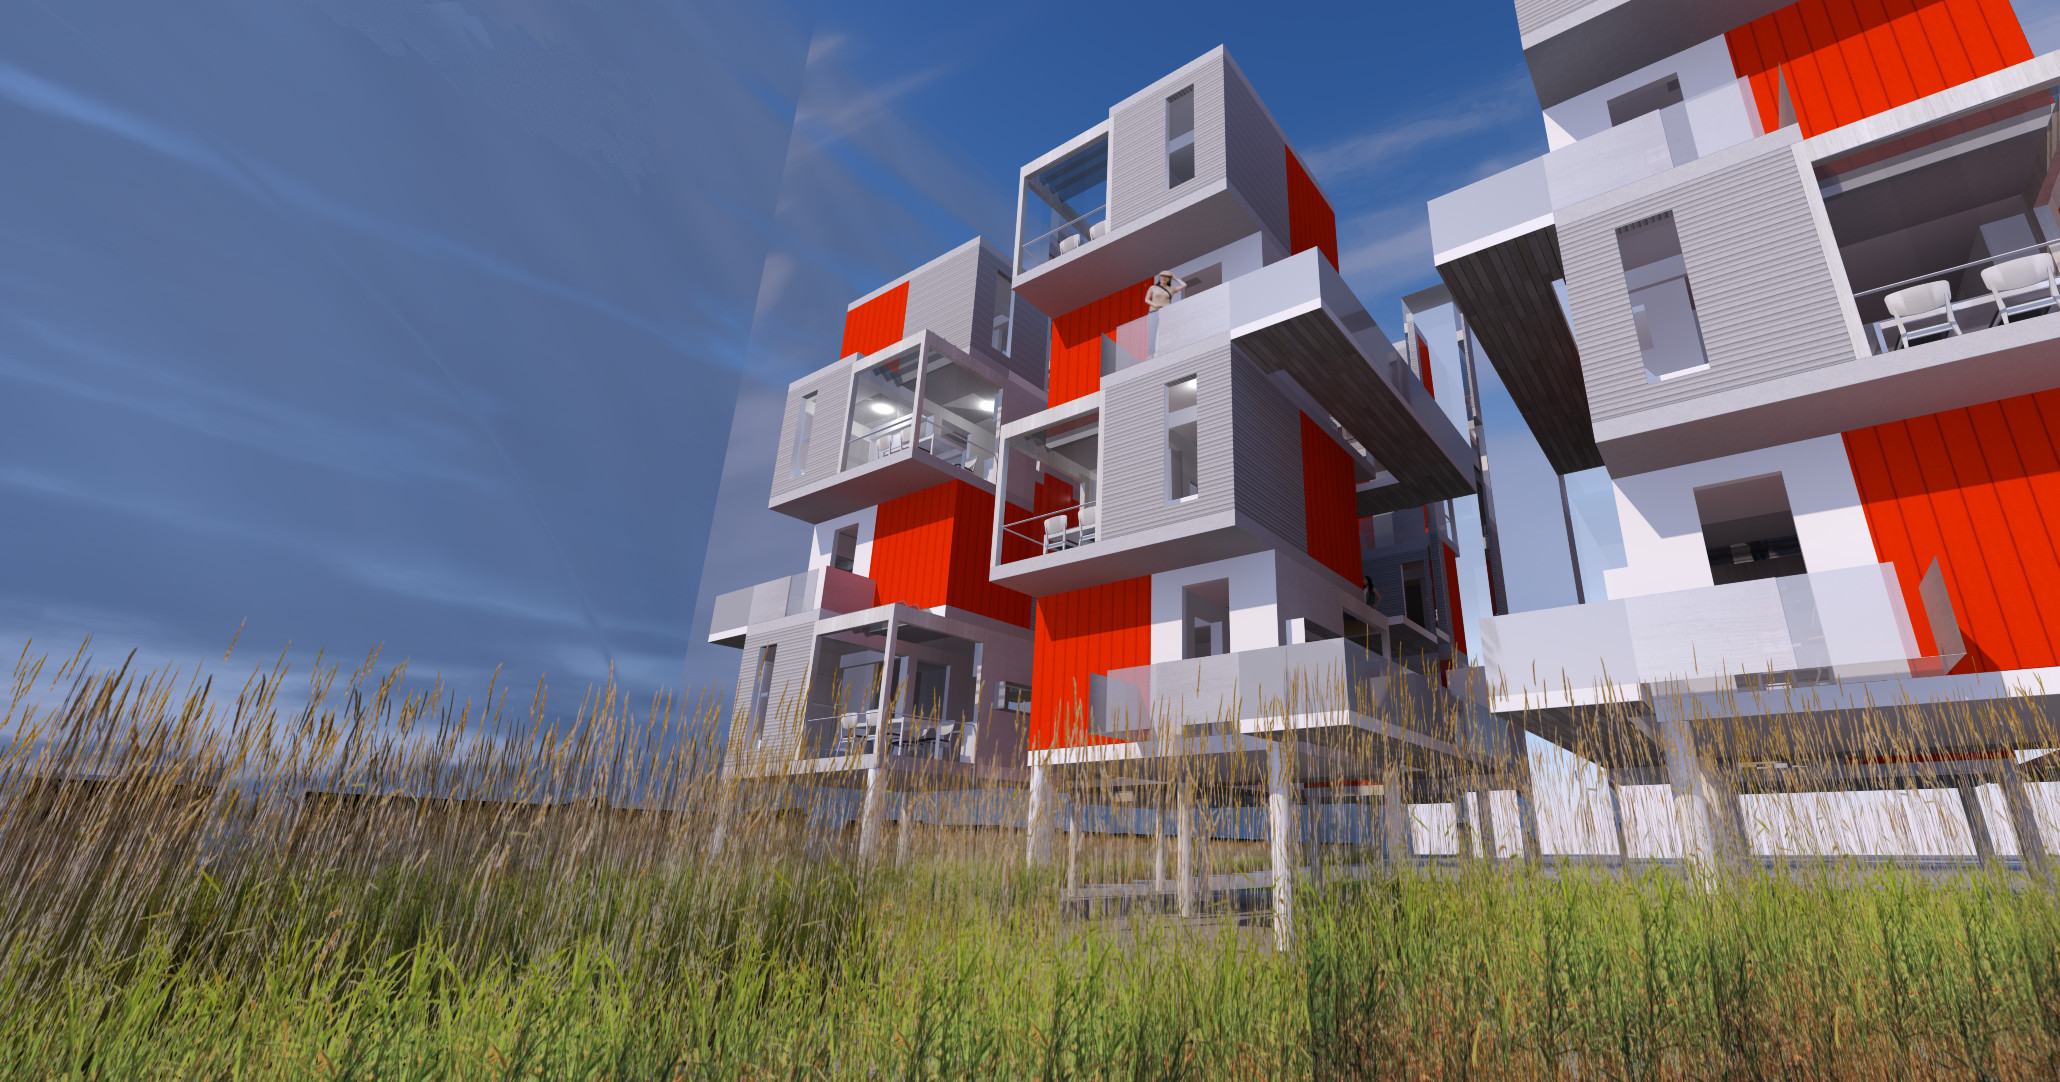 Proposal - affordable housing